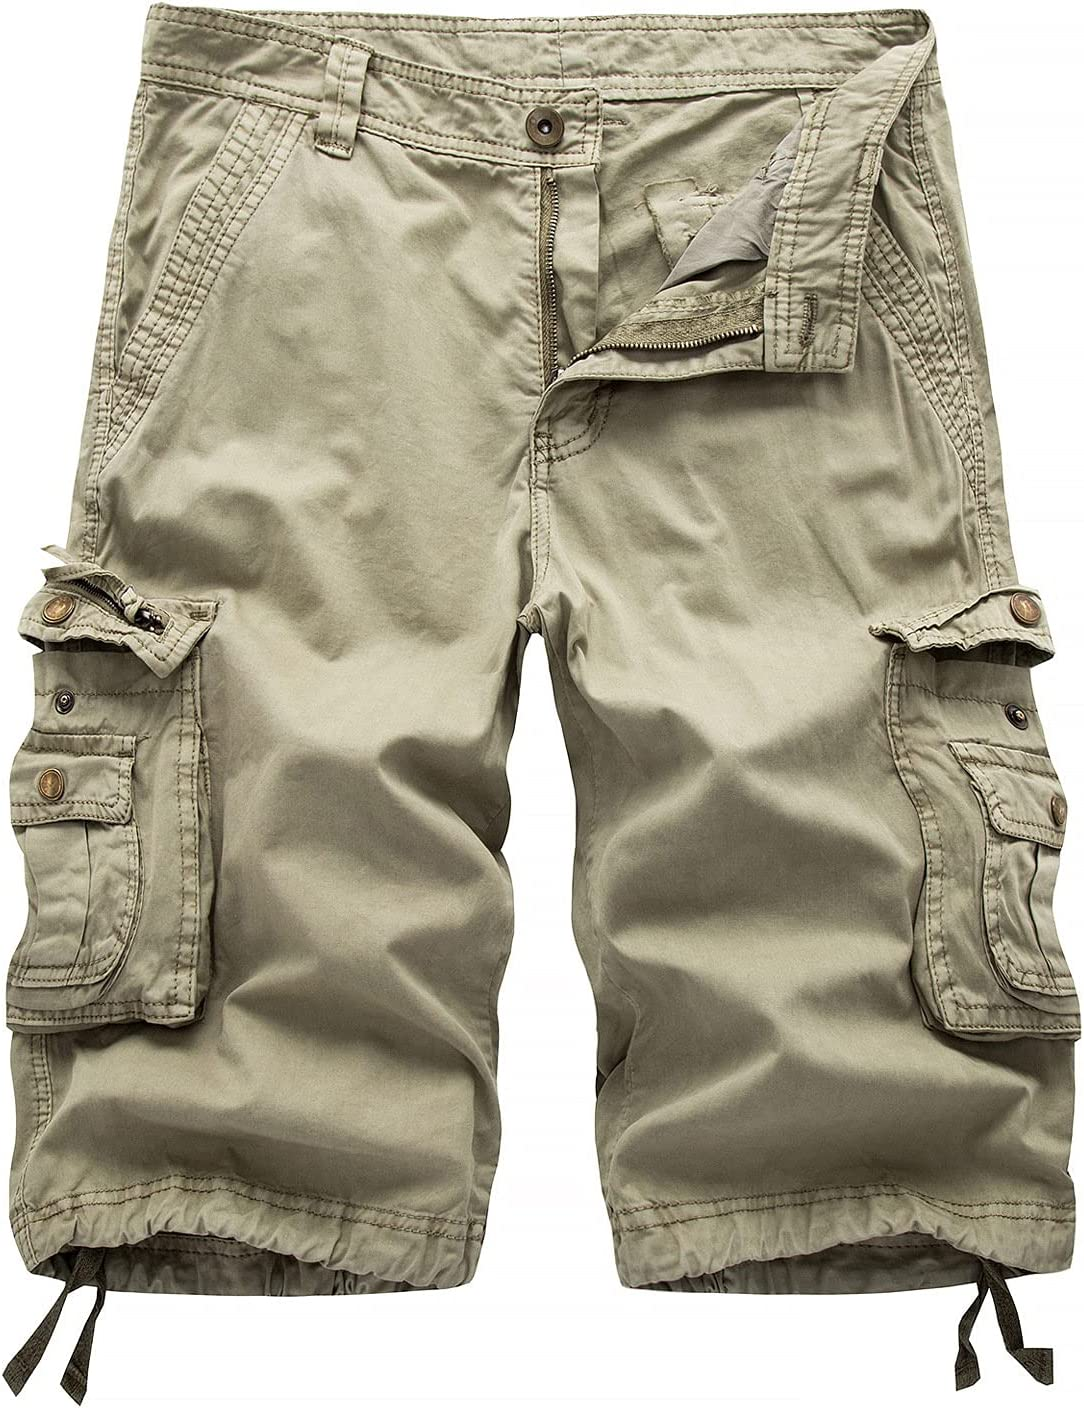 Outdoor Twill Cargo Shorts for Men Casual Summer Lightweight Outdoor Shorts Relaxed Fit Stretchy Multi-Pocket Shorts (Khaki,34)